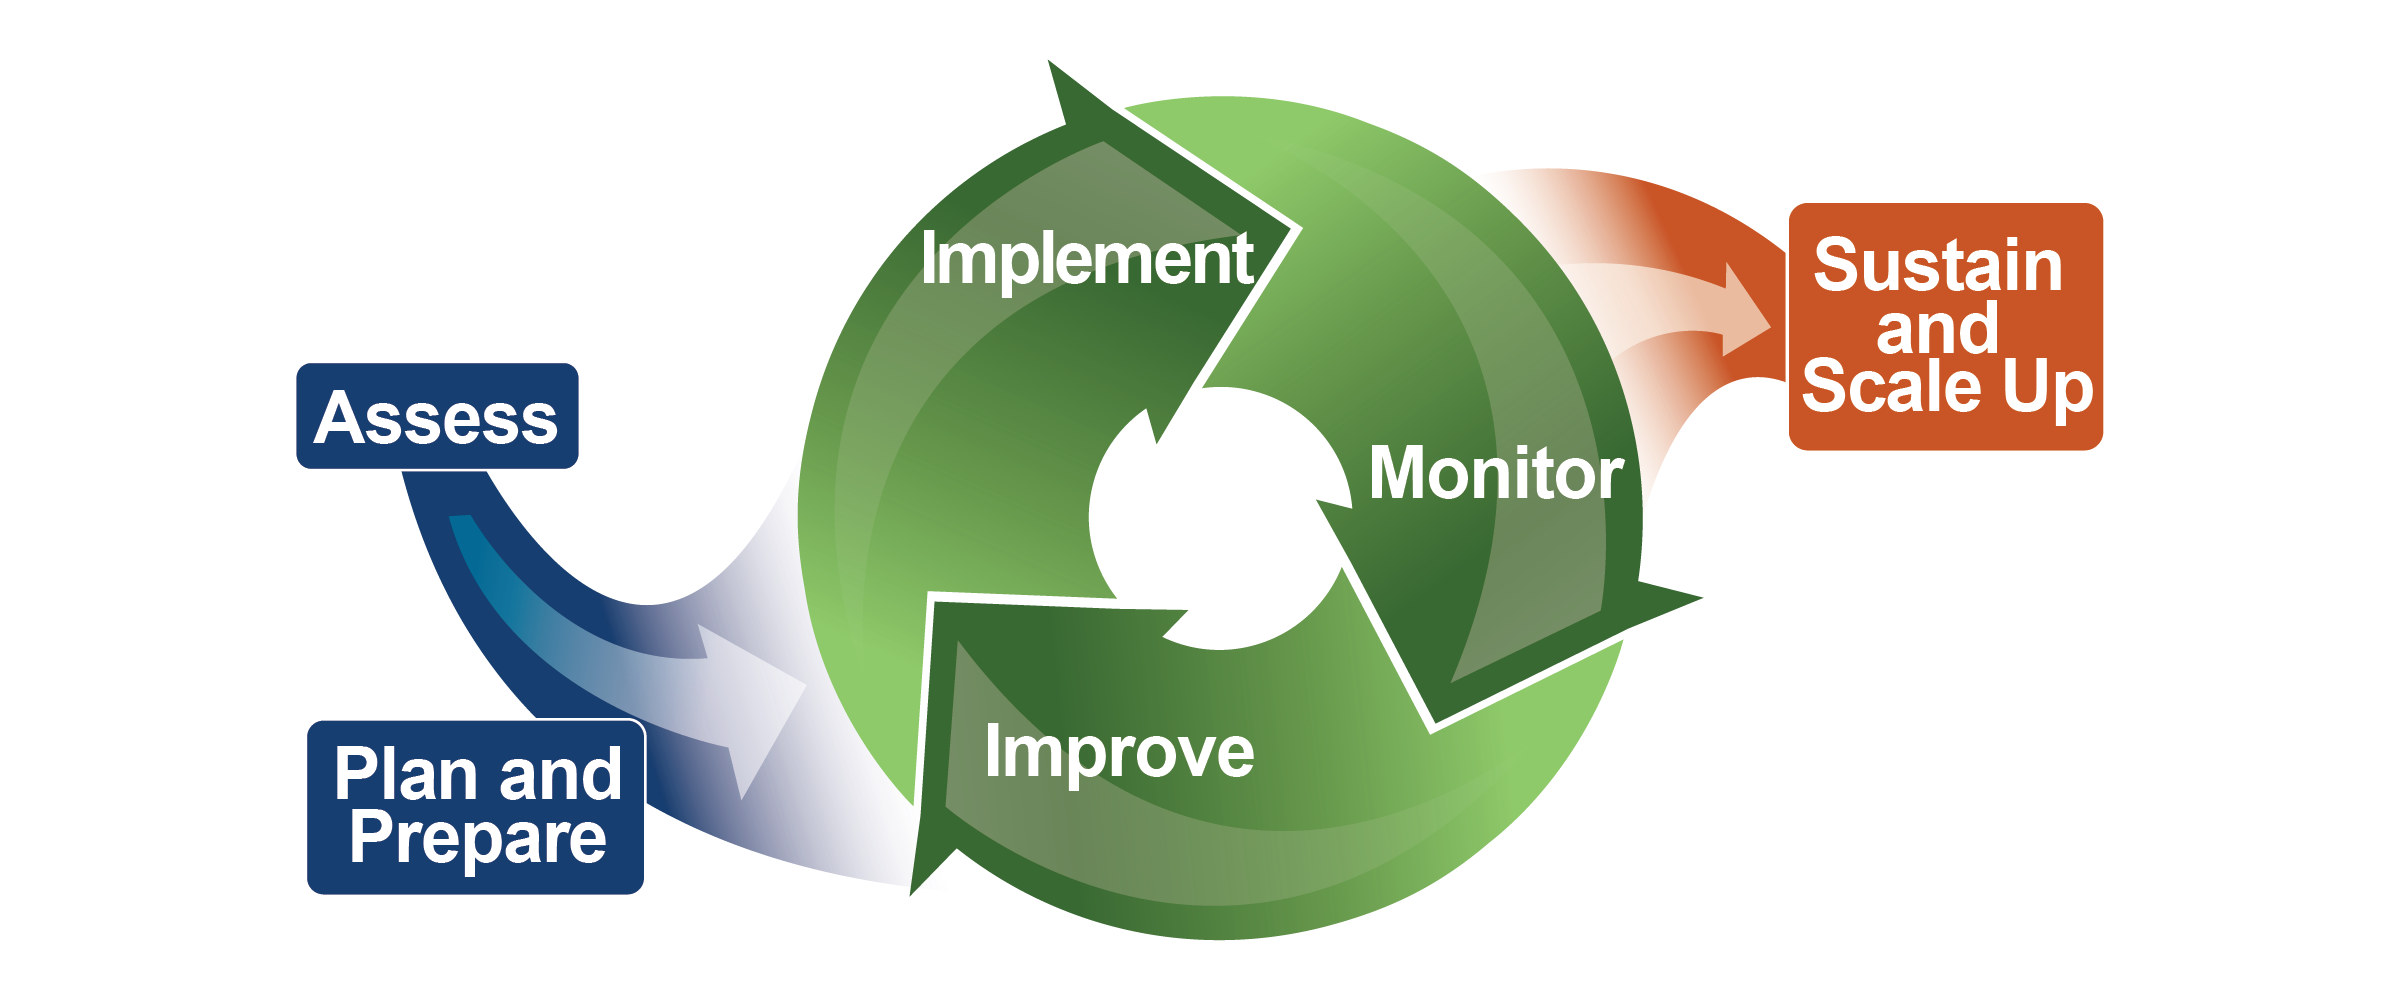 The three-phase technical assistance model. Assess plus Plan and Prepare feed into a continuous cycle of Implement, Monitor, and Improve. The output is Sustainability and Scale Up.